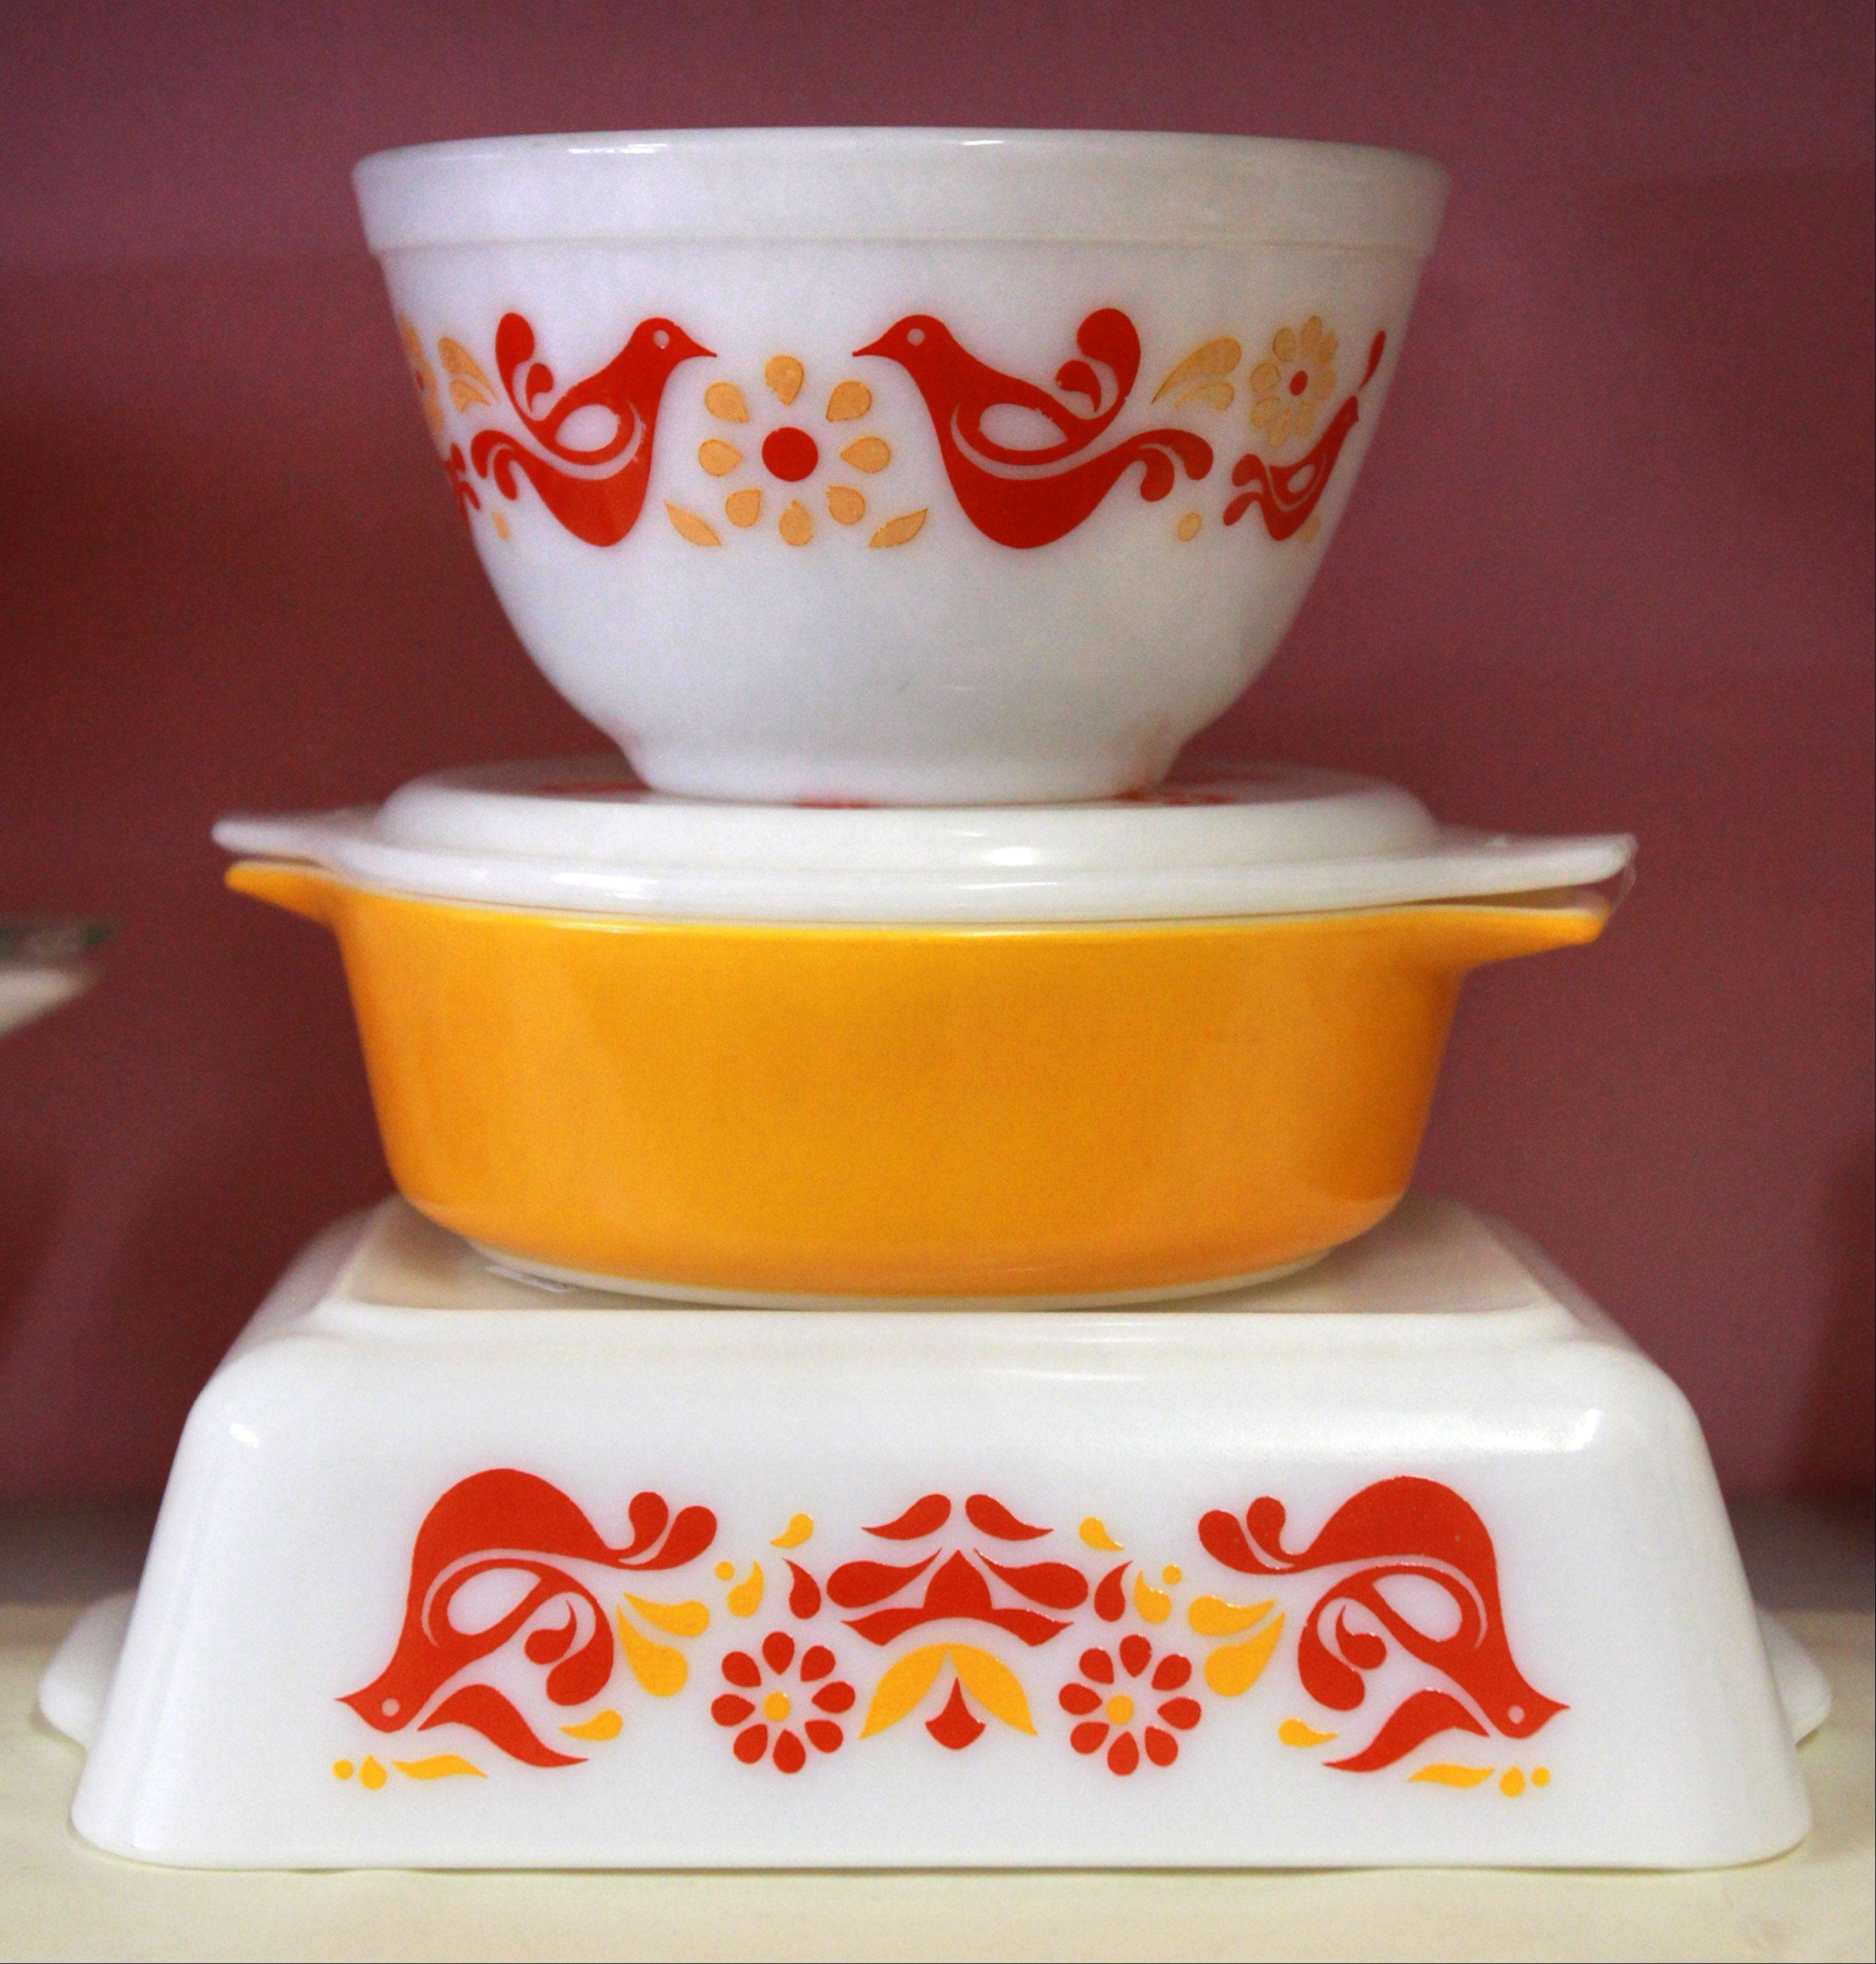 Pyrex bowls in friendship pattern at Jazz'e Junque accessory store in Chicago.